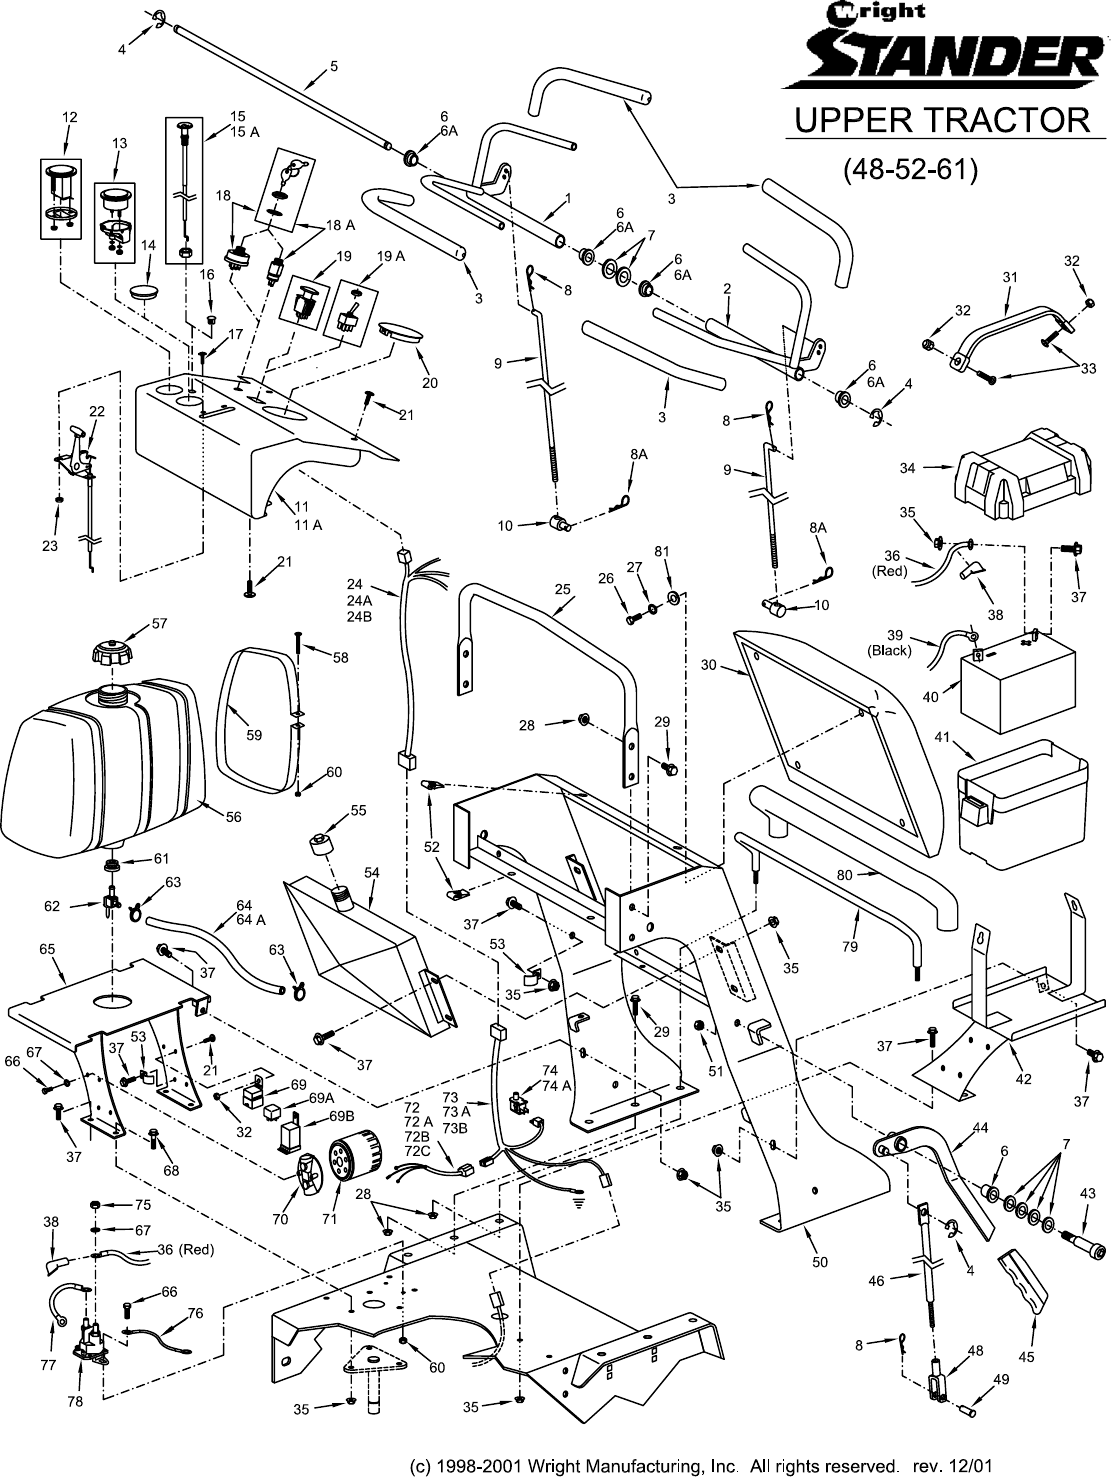 page 9 of wright manufacturing lawn mower 52 user guide rh lawnandgarden manualsonline com wright stander 61 manual wright stander parts manual